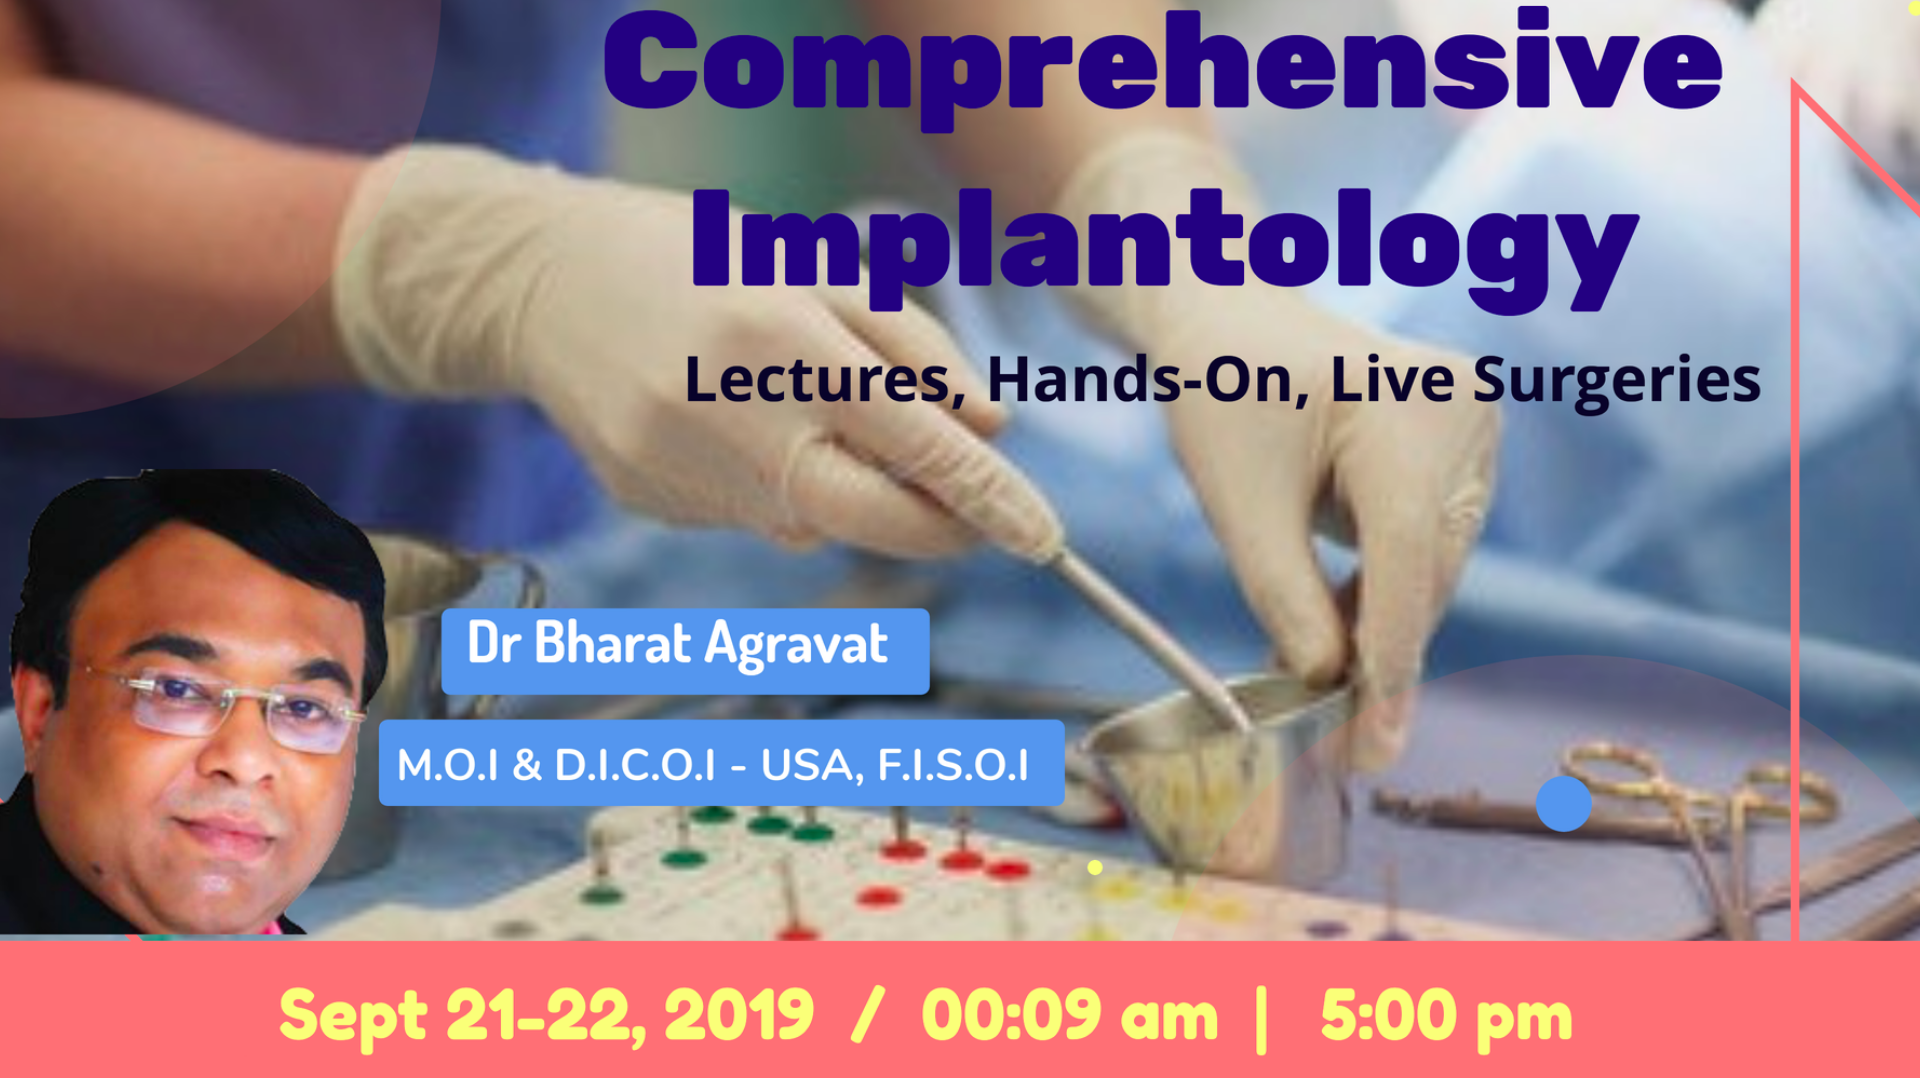 Comprehensive Dental Implants Training, Lectures, Hands-On, Live Surgeries  in Ahmedabad Gujarat Tickets by Dr Bharat Agravat, 21 Sep, 2019, Ahmedabad